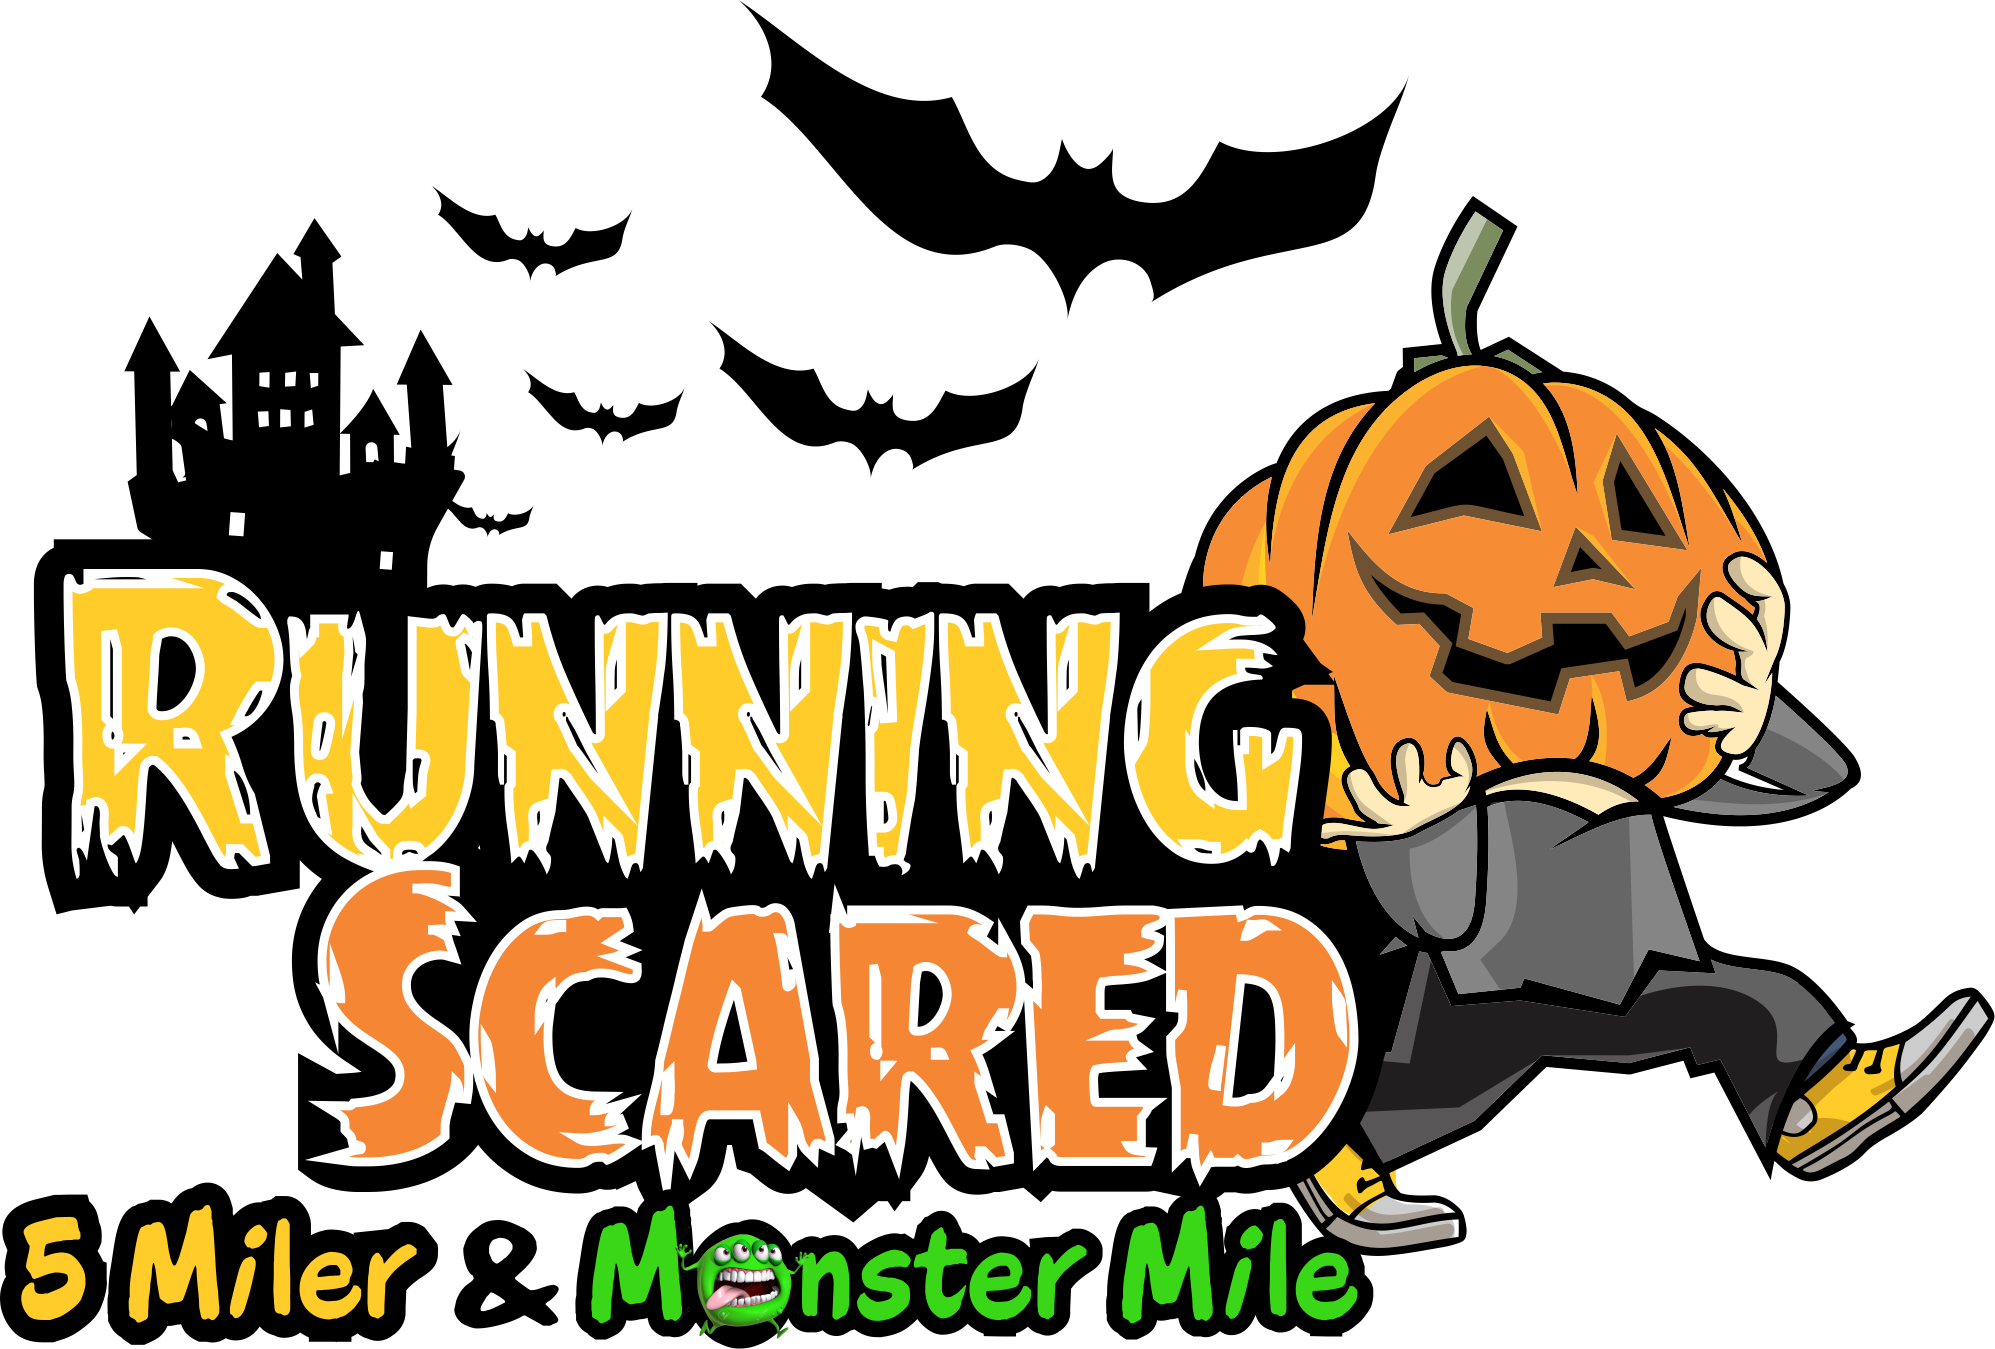 Running scared miler and. Costume clipart costume contest